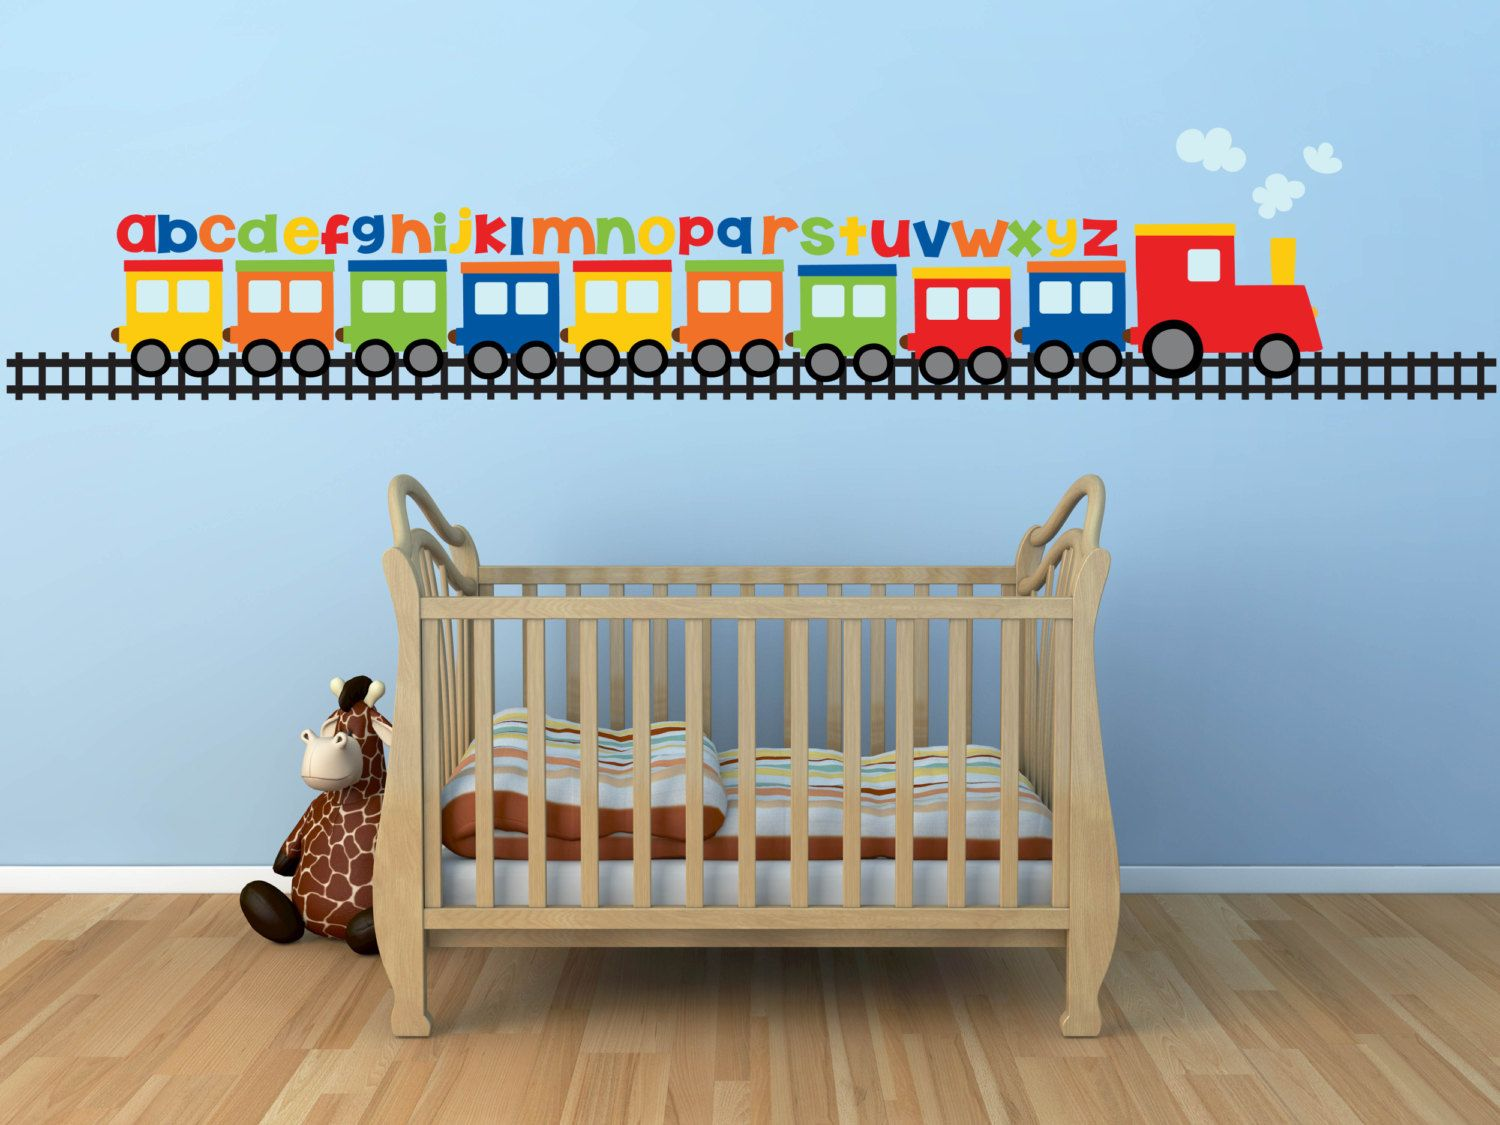 Baby nursery baby boy wall decals for nursery train wall sticker baby nursery baby boy wall decals for nursery train wall sticker alphabet abc vinyl art colorful amipublicfo Gallery